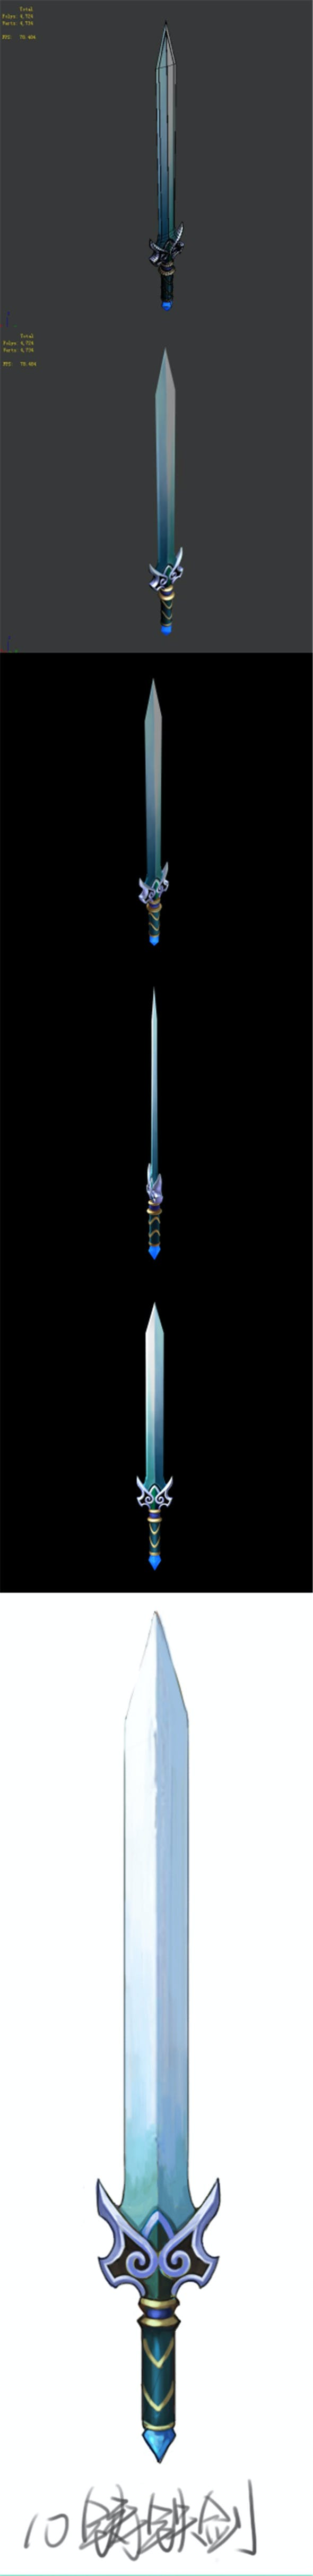 Game character weapons - cast iron sword - 3DOcean Item for Sale